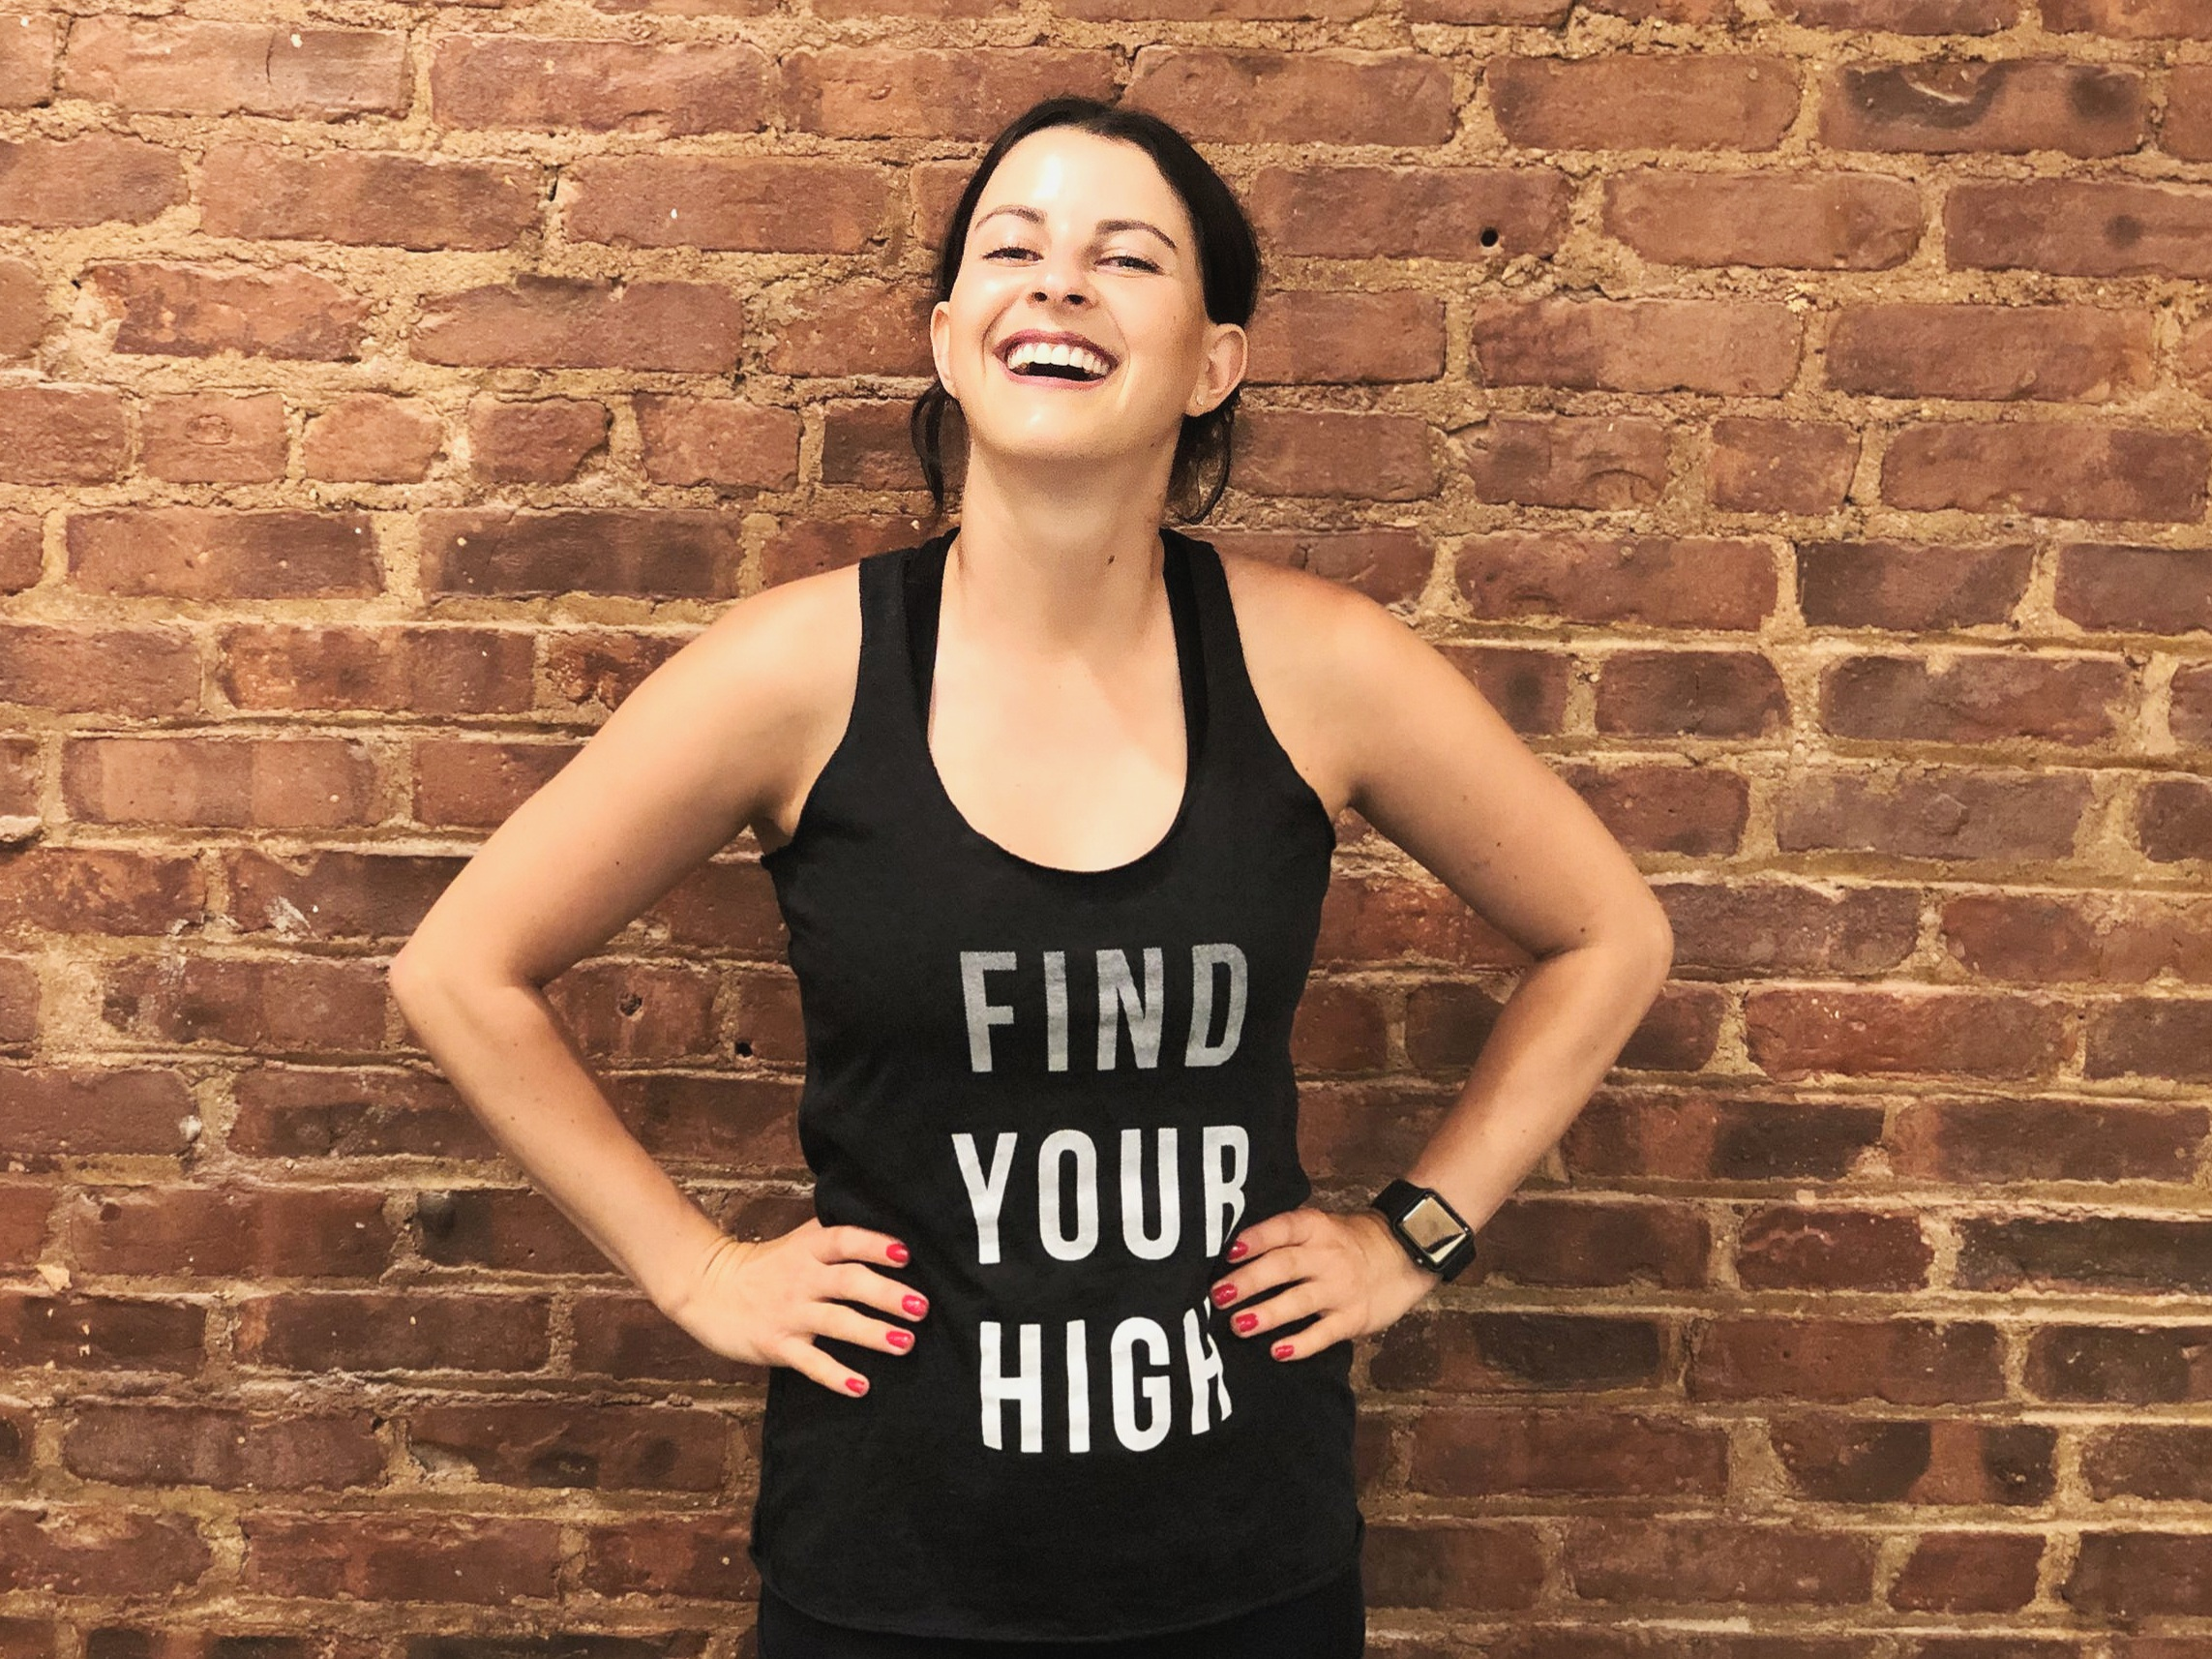 Kristina Kindseth - @beyondthecoreKristina is an ACE certified instructor with a passion for movement and all things sweaty! She has been a HIIT IT! enthusiast for years and is thrilled to officially be joining the team.